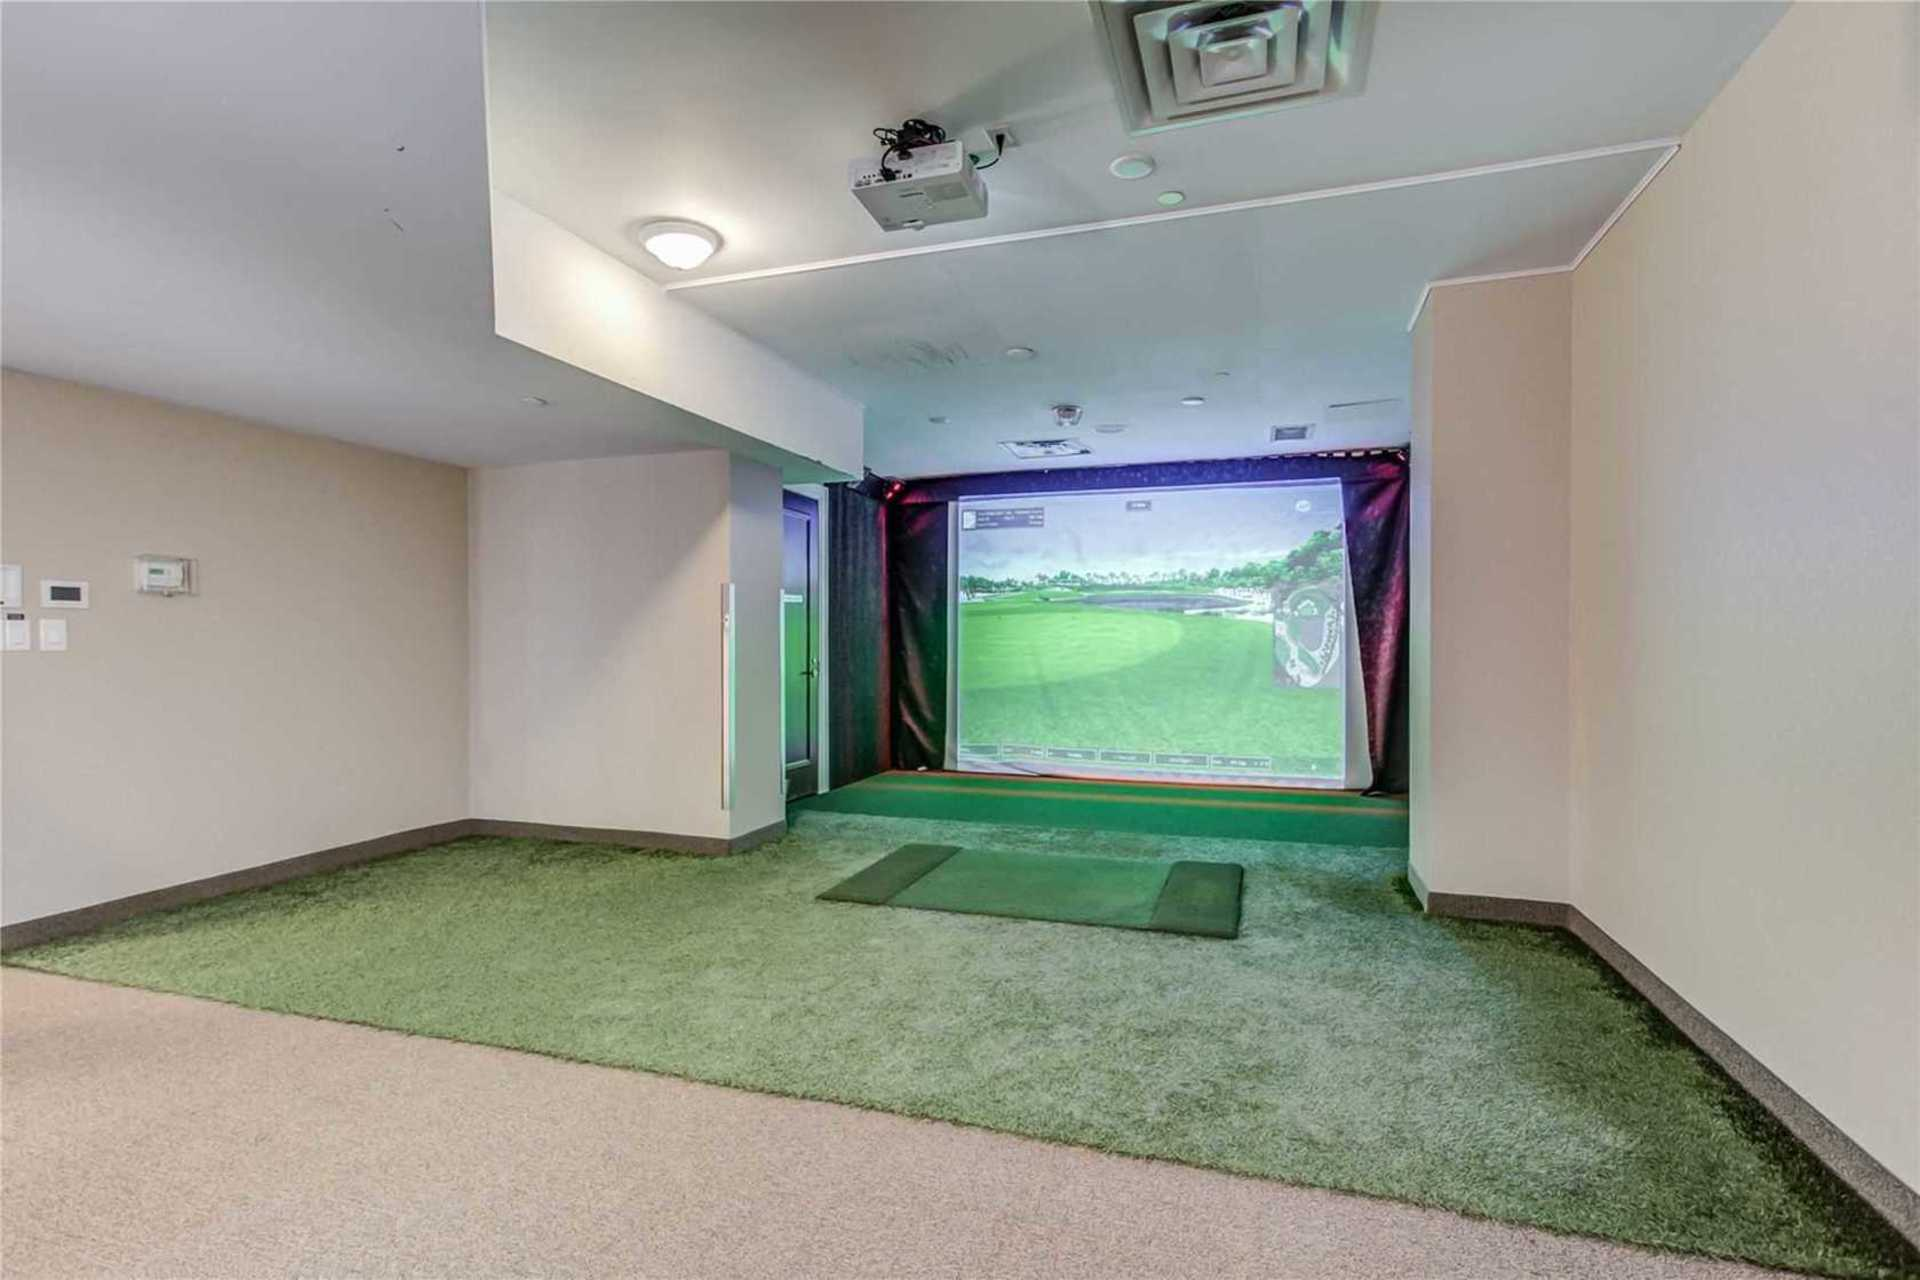 Golf Simulator at 1209 - 10 Bloorview Place, Don Valley Village, Toronto